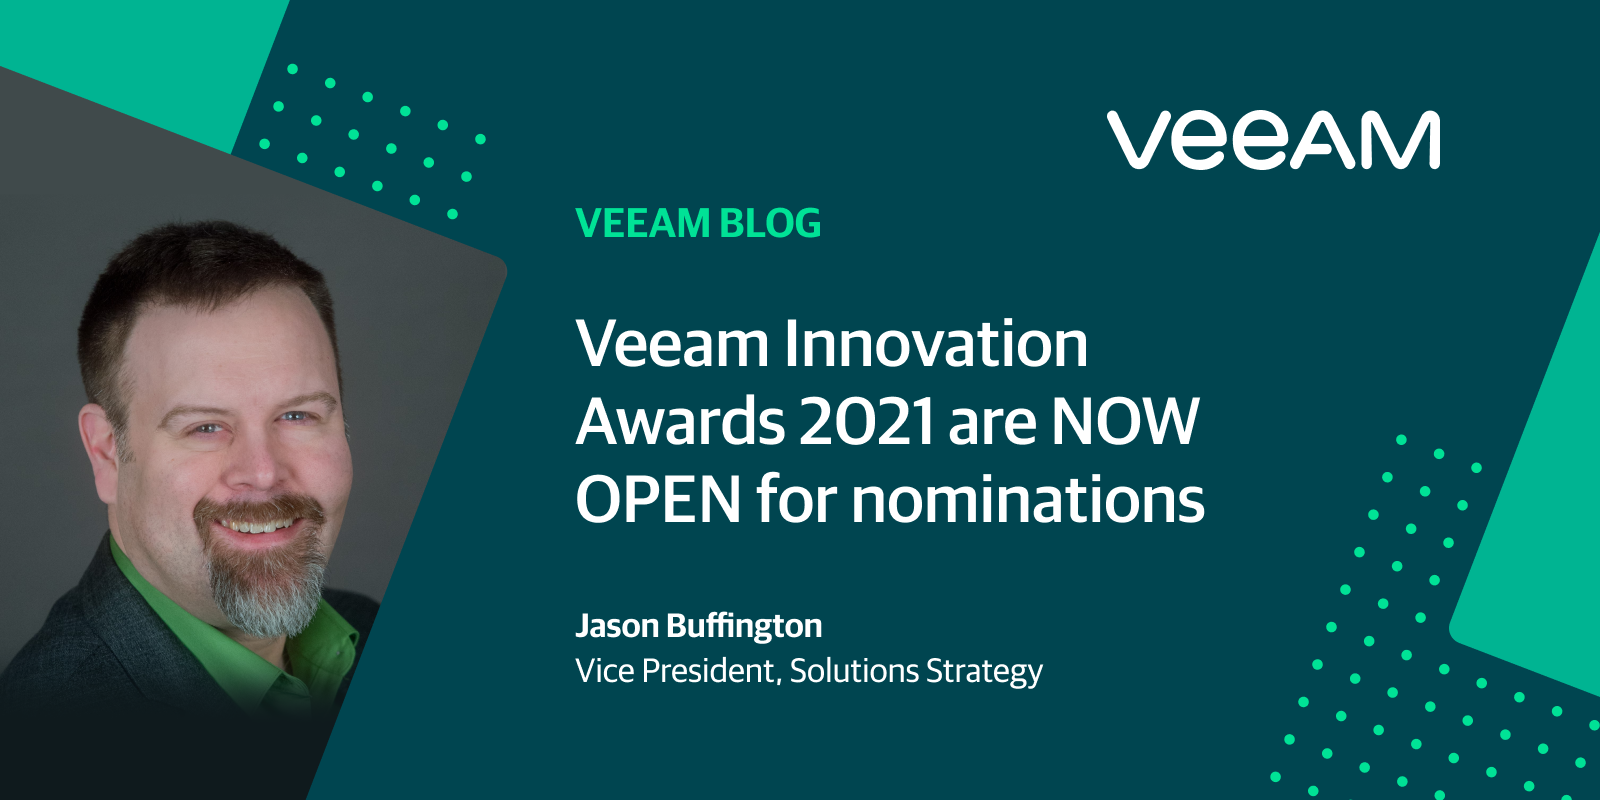 Veeam Innovation Awards 2021 are NOW OPEN for nominations